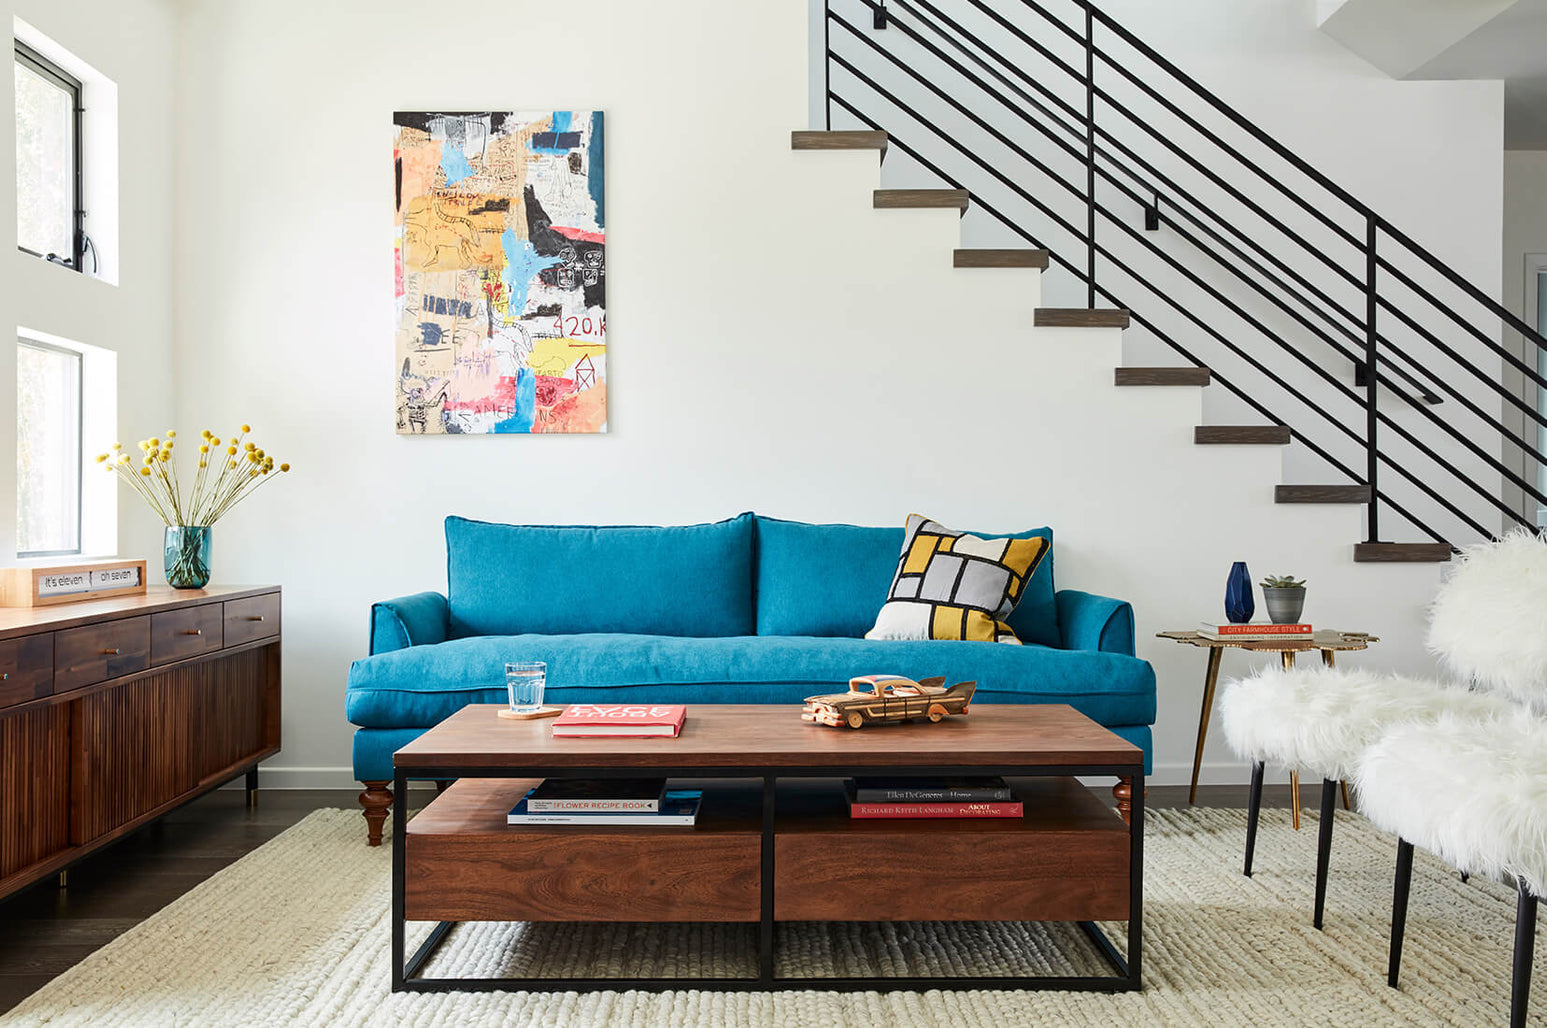 How to style a room